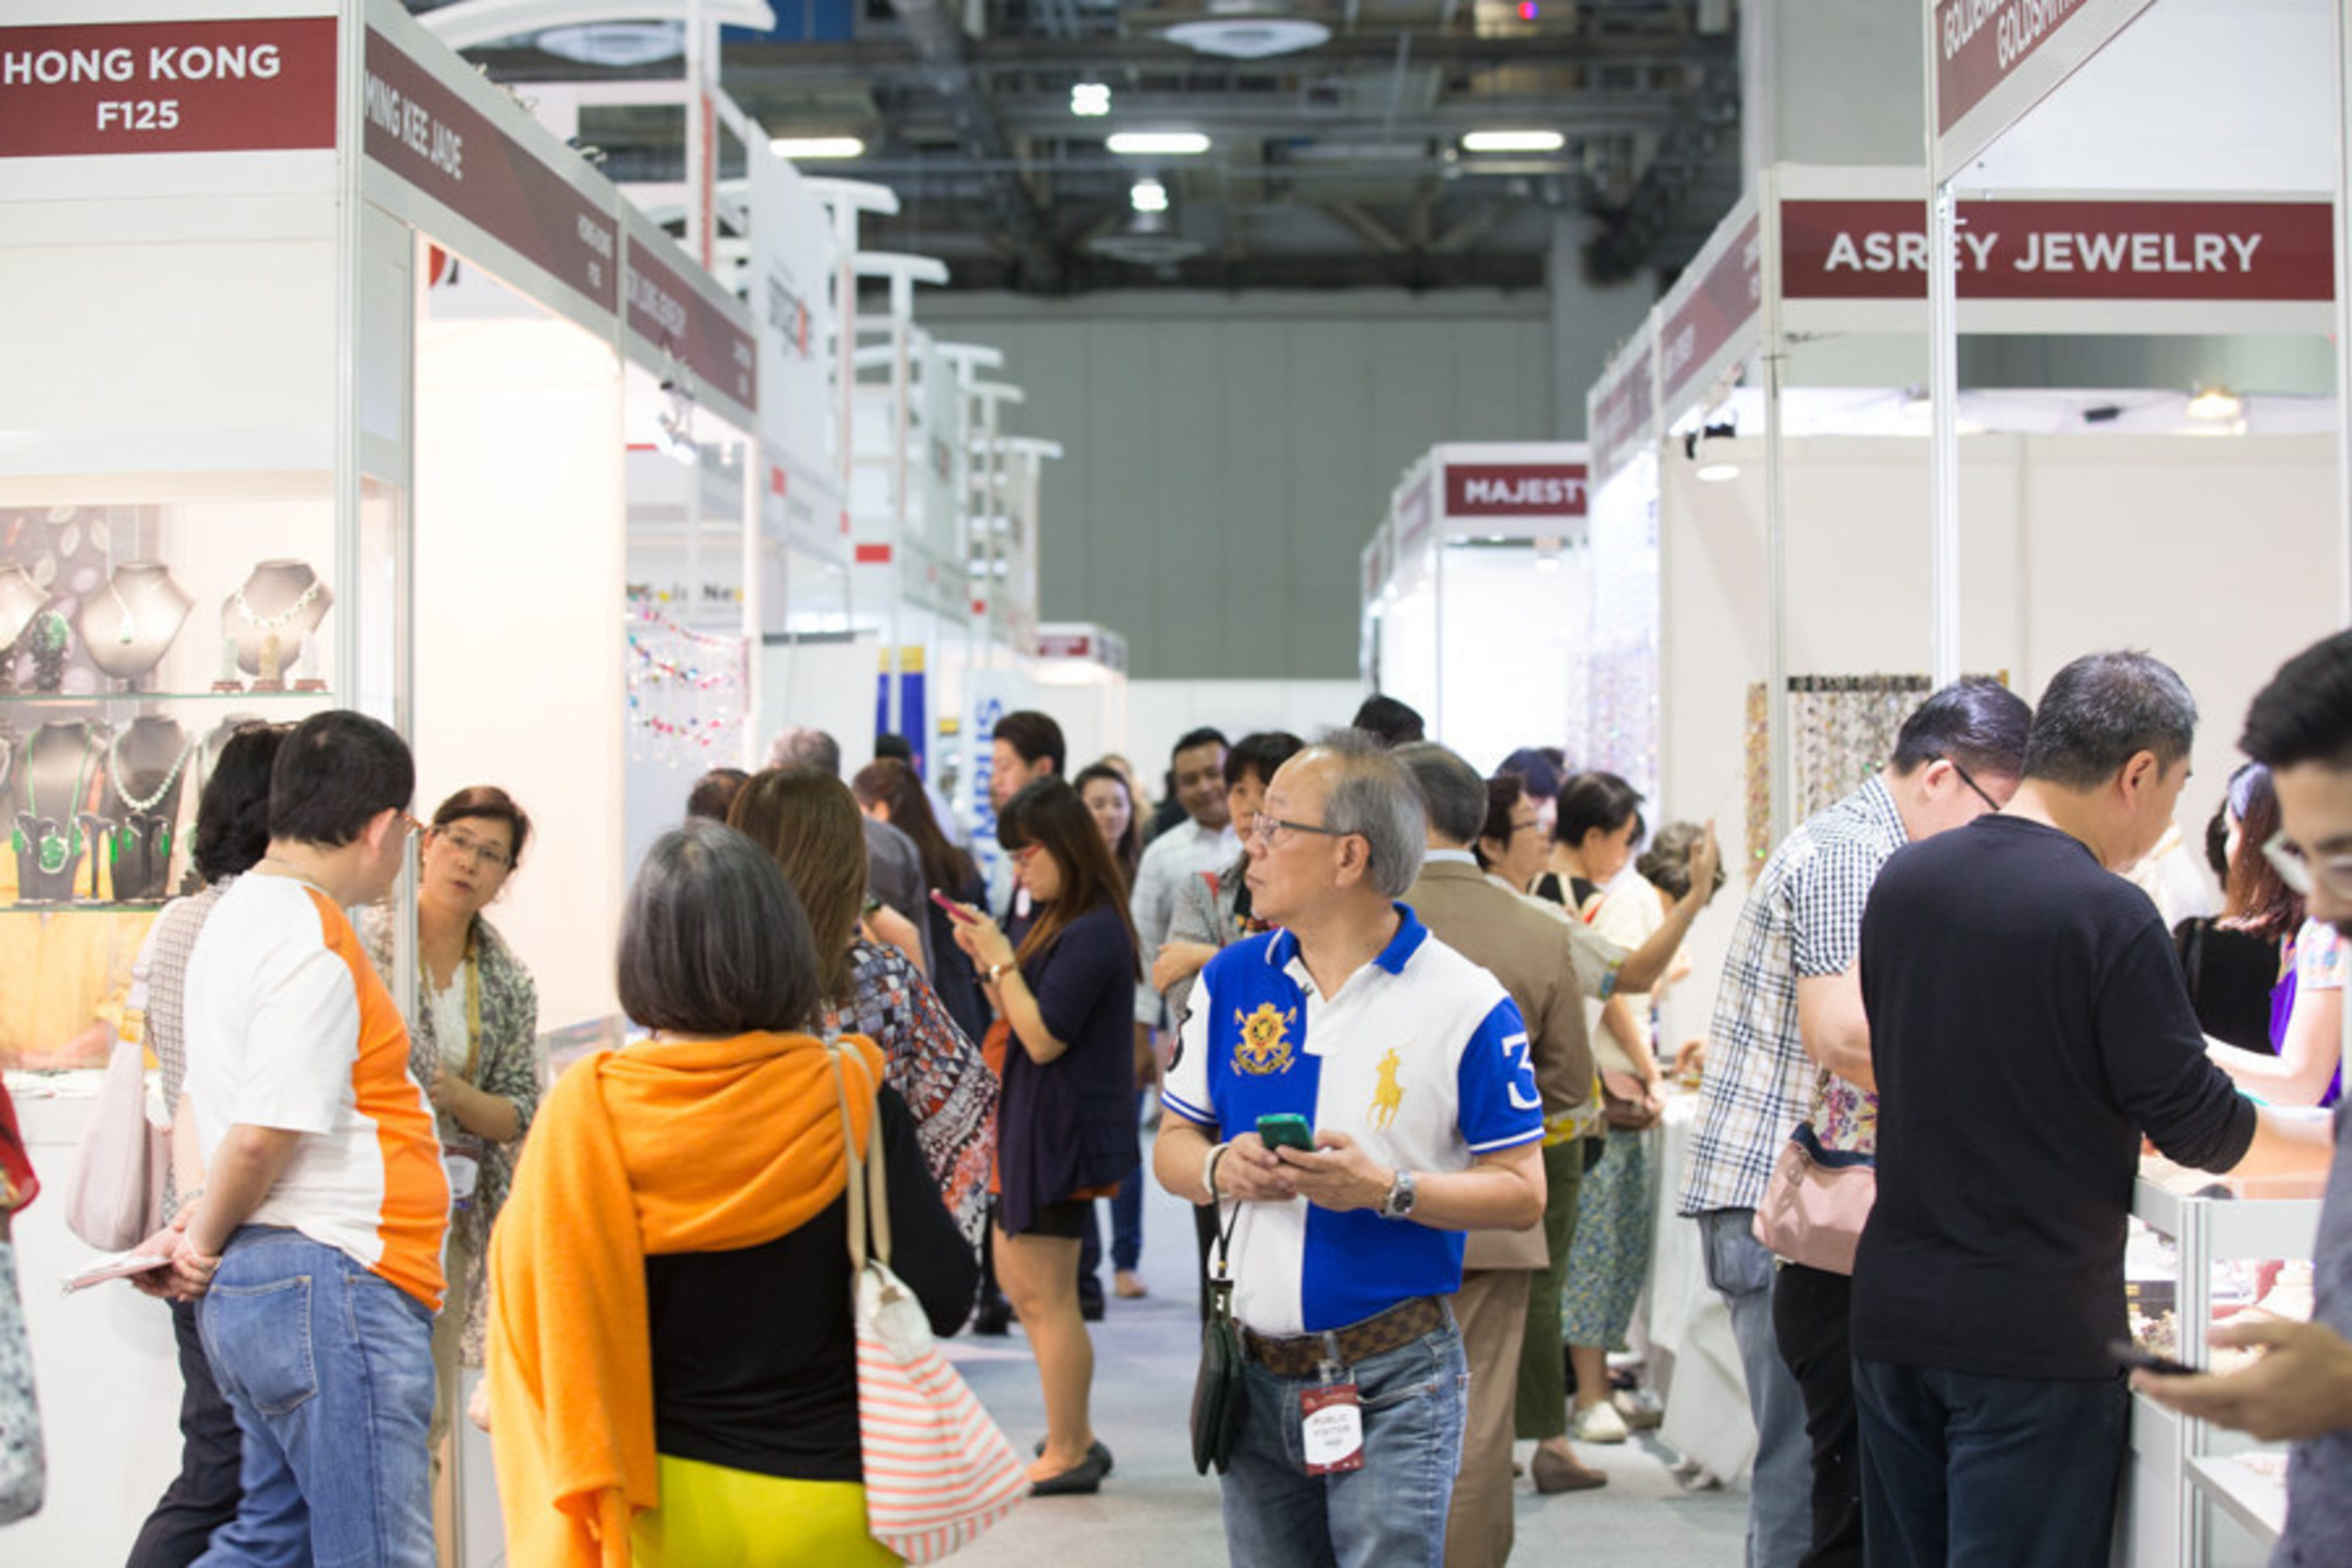 Singapore Jewellery & Gem Fair 2016 - the most significant fine jewellery event in the region